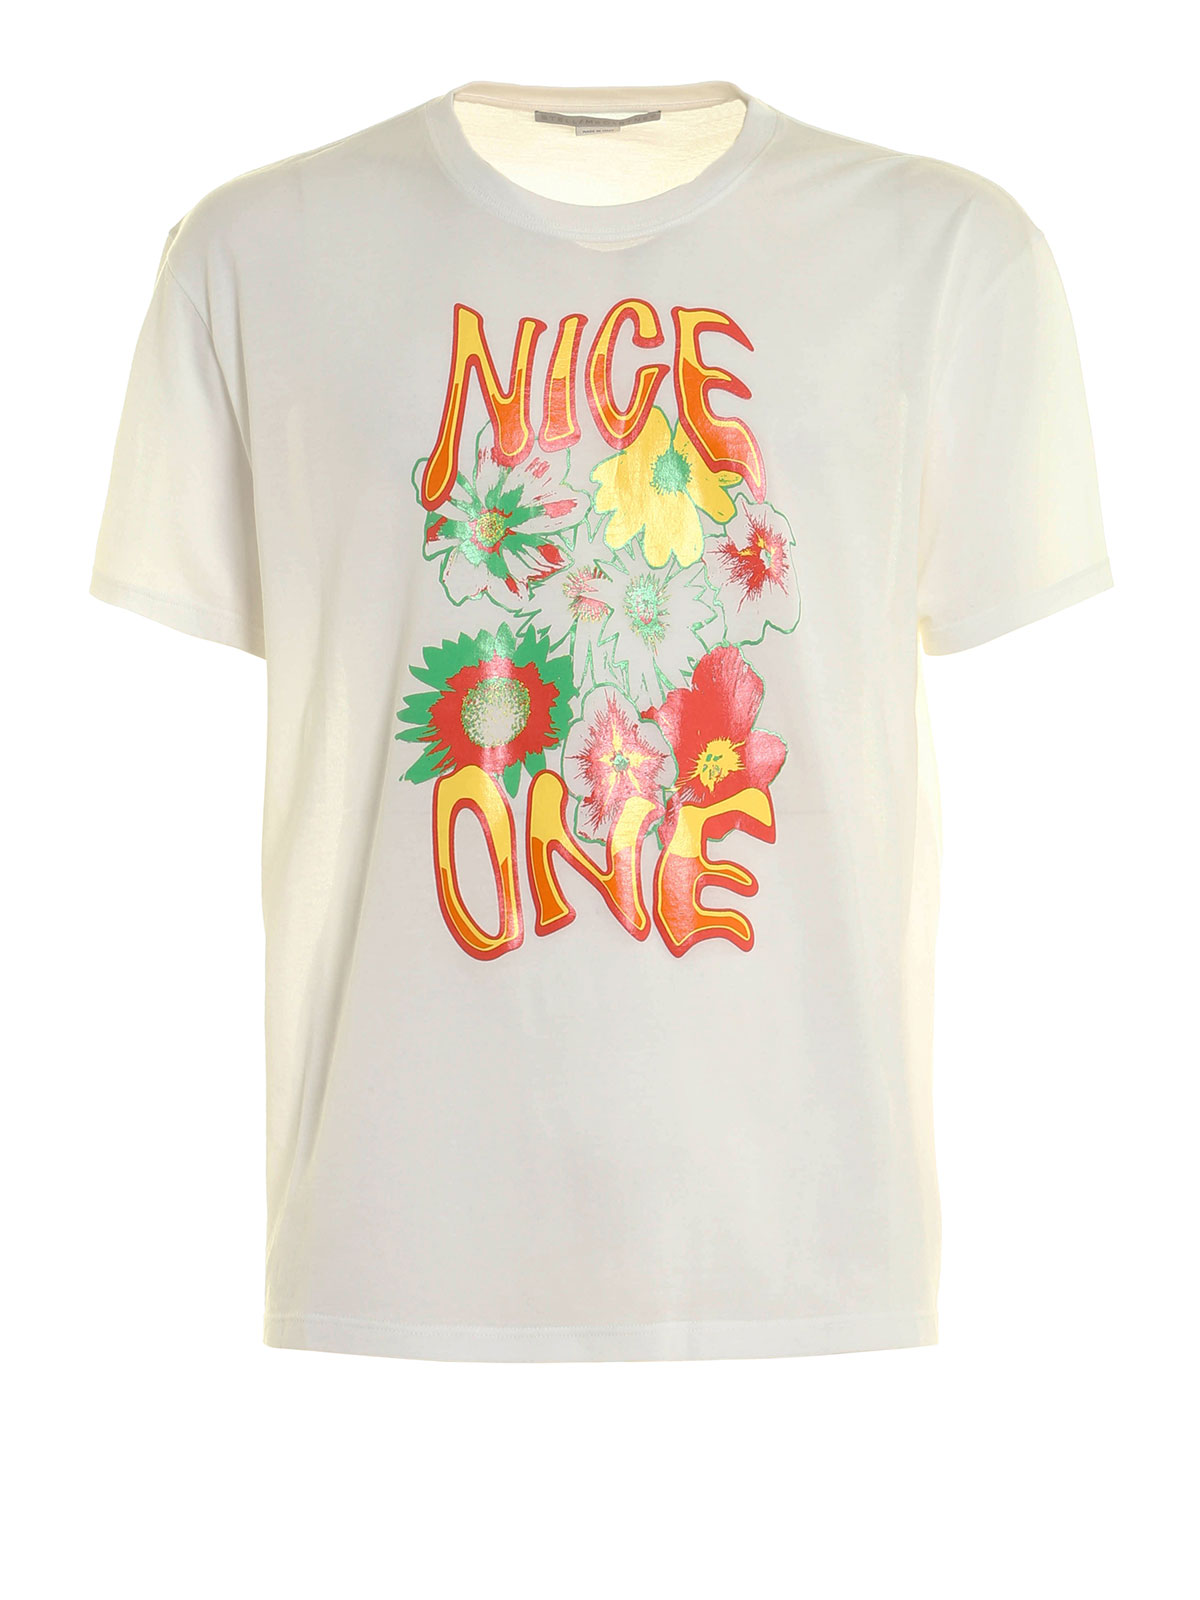 Nice one printed t shirt by stella mccartney t shirts for Stella mccartney t shirt